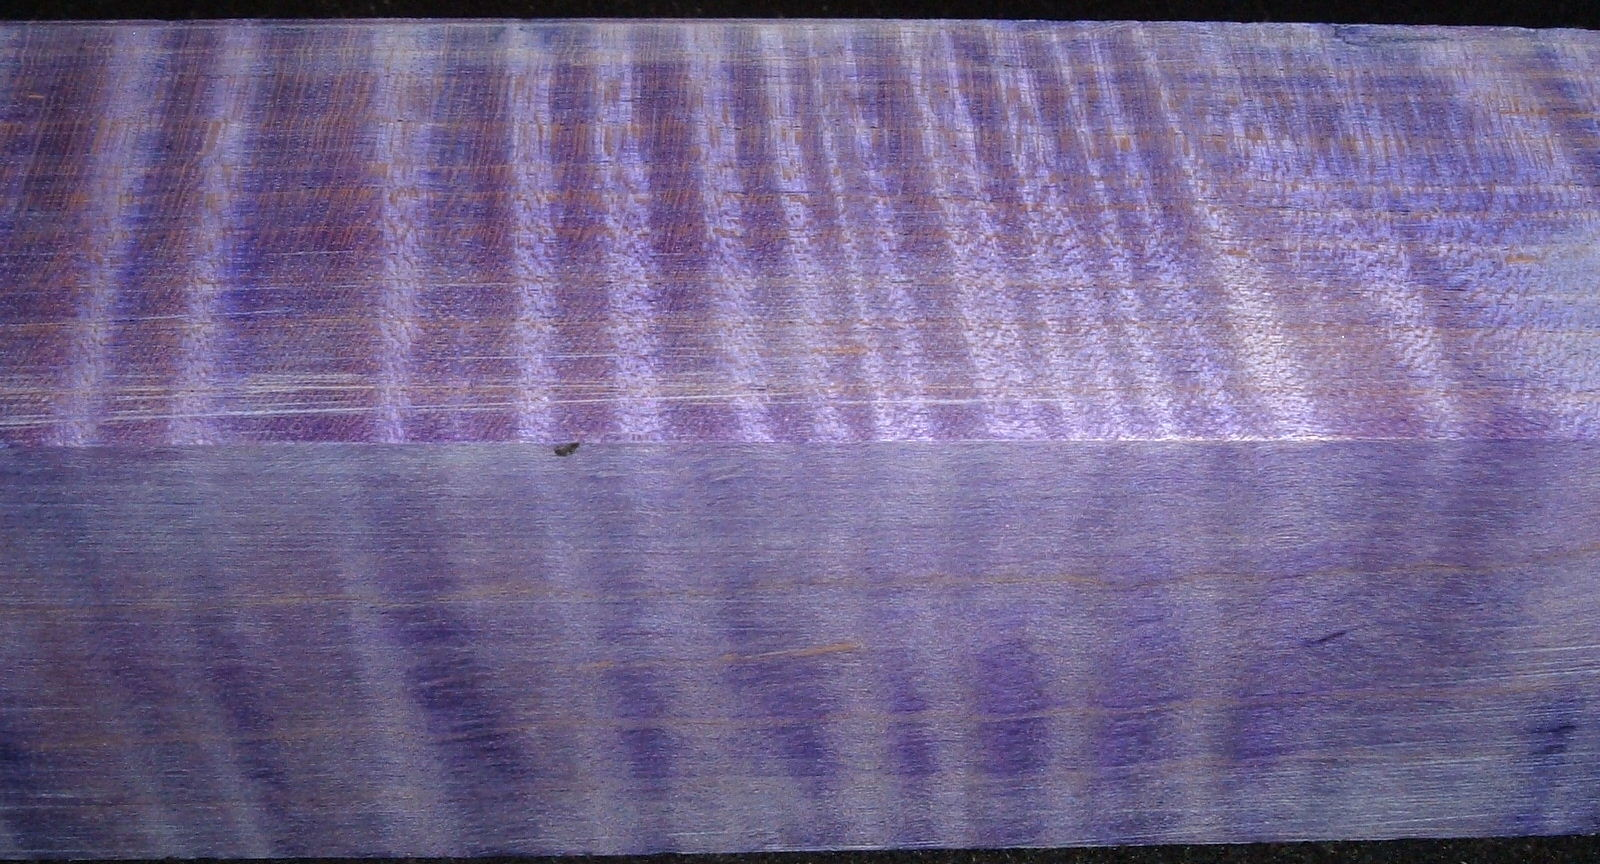 Z394, Curly Tiger Maple Dyed Stabilized, wood turning block, Violet, 1-7/8x1-7/8x6-1/2